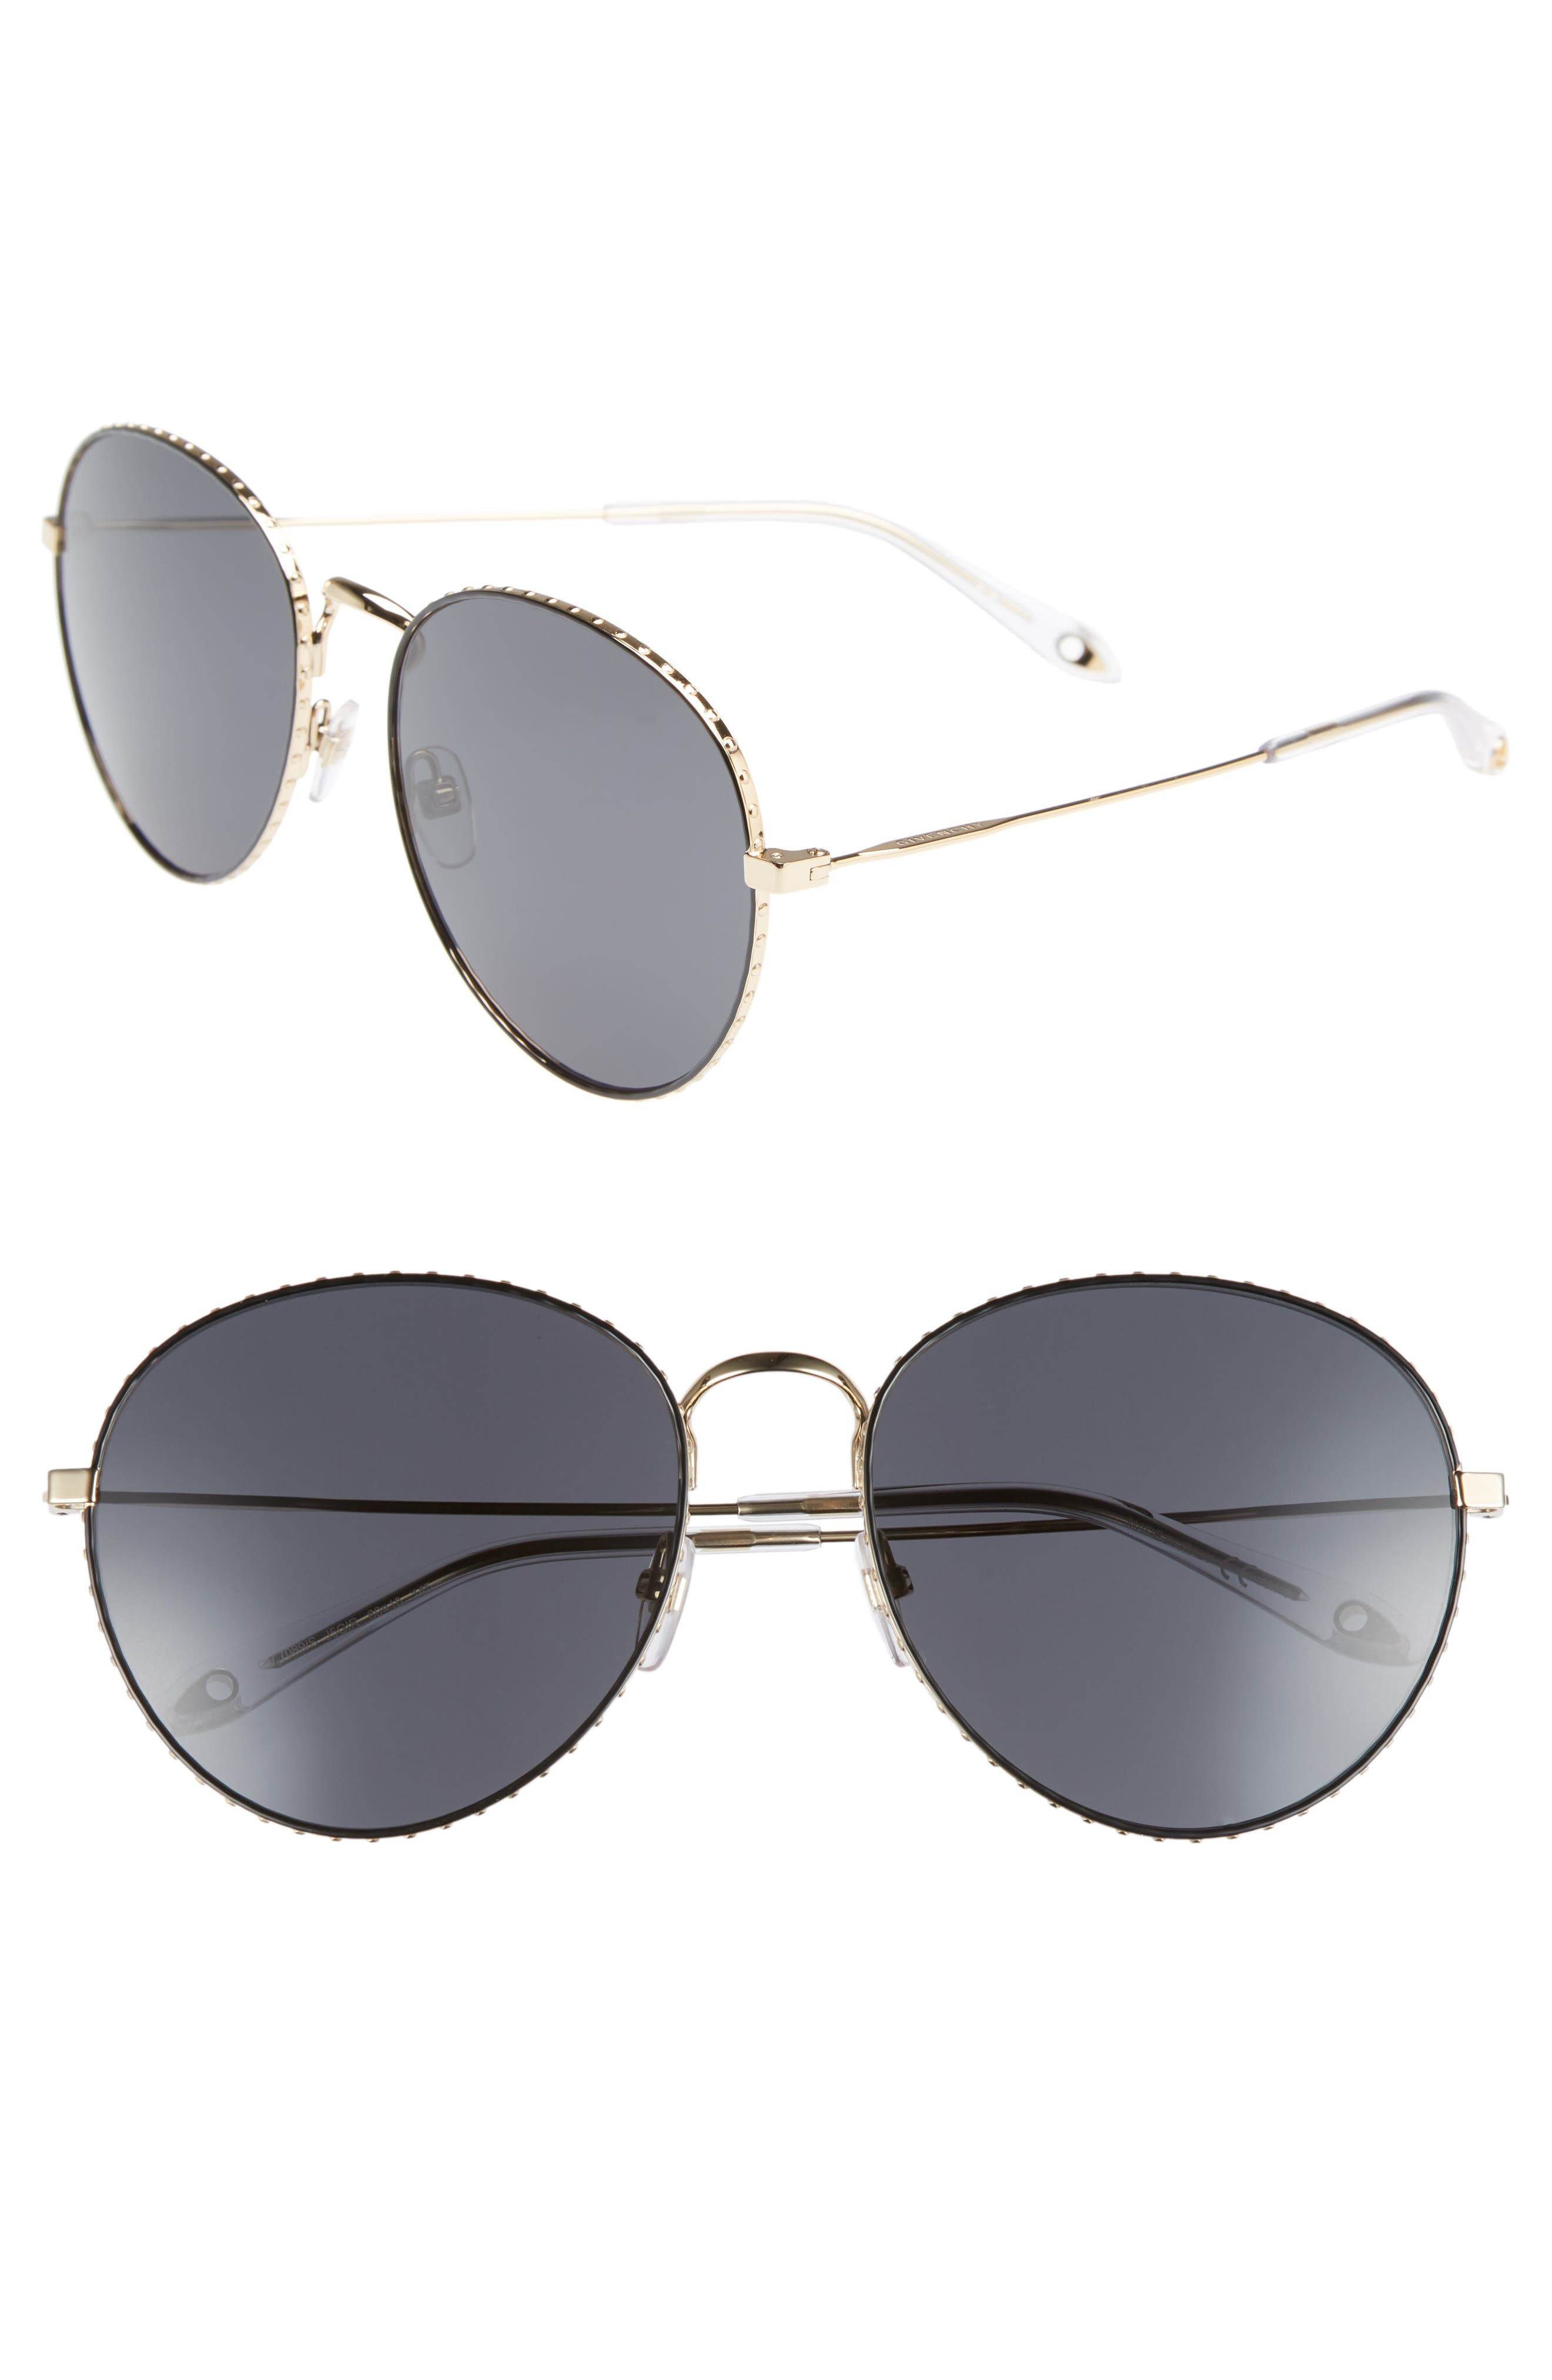 Givenchy 60mm Round Metal Sunglasses